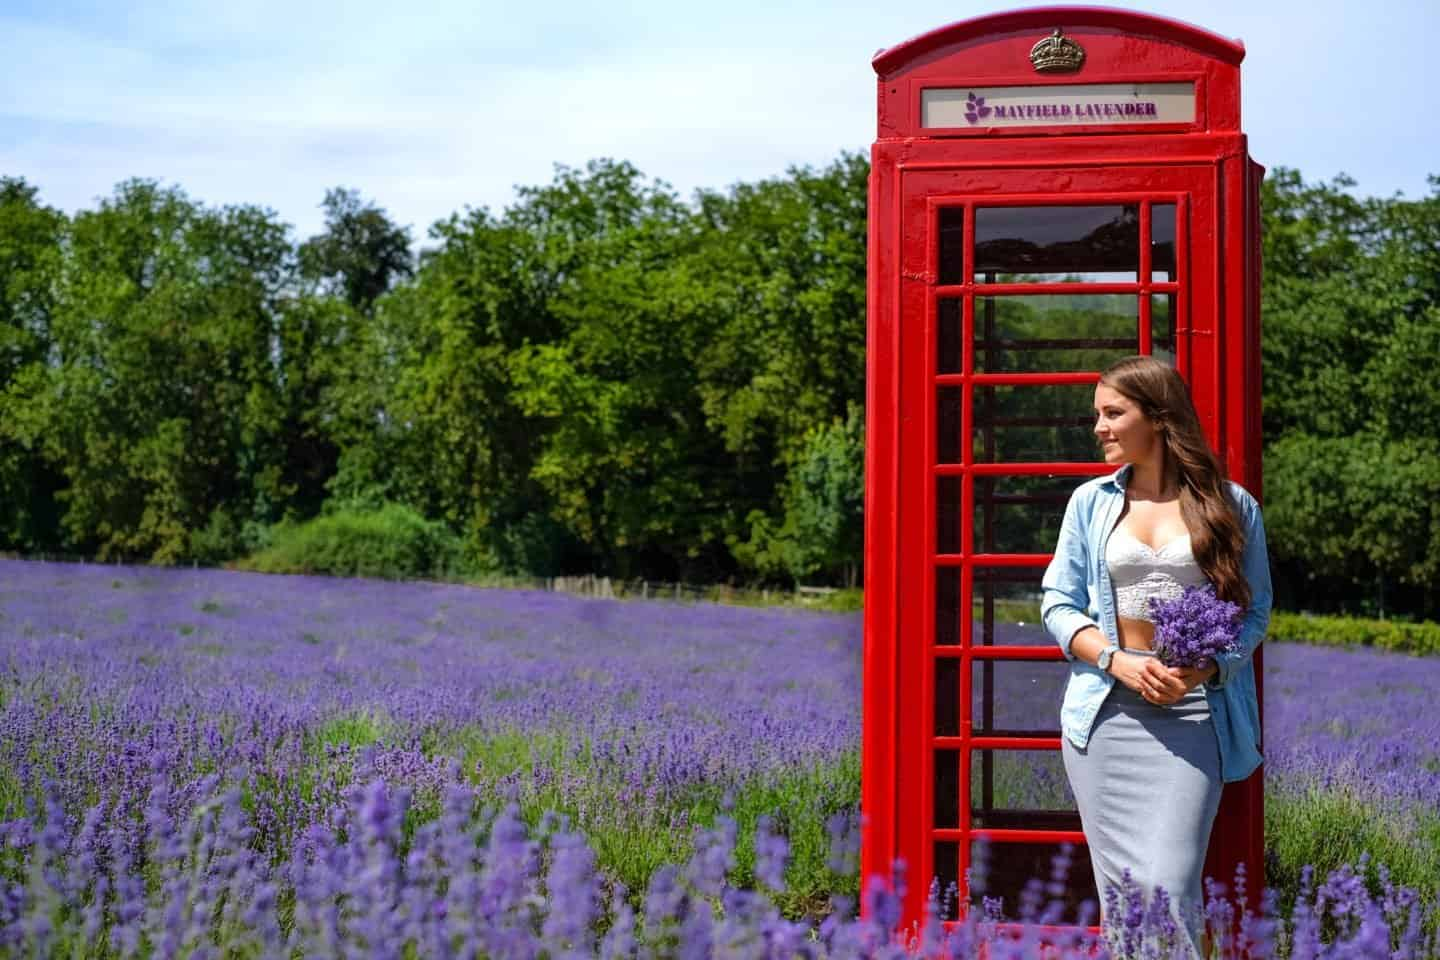 A red telephone box amongst purple lavender during the summer in the UK